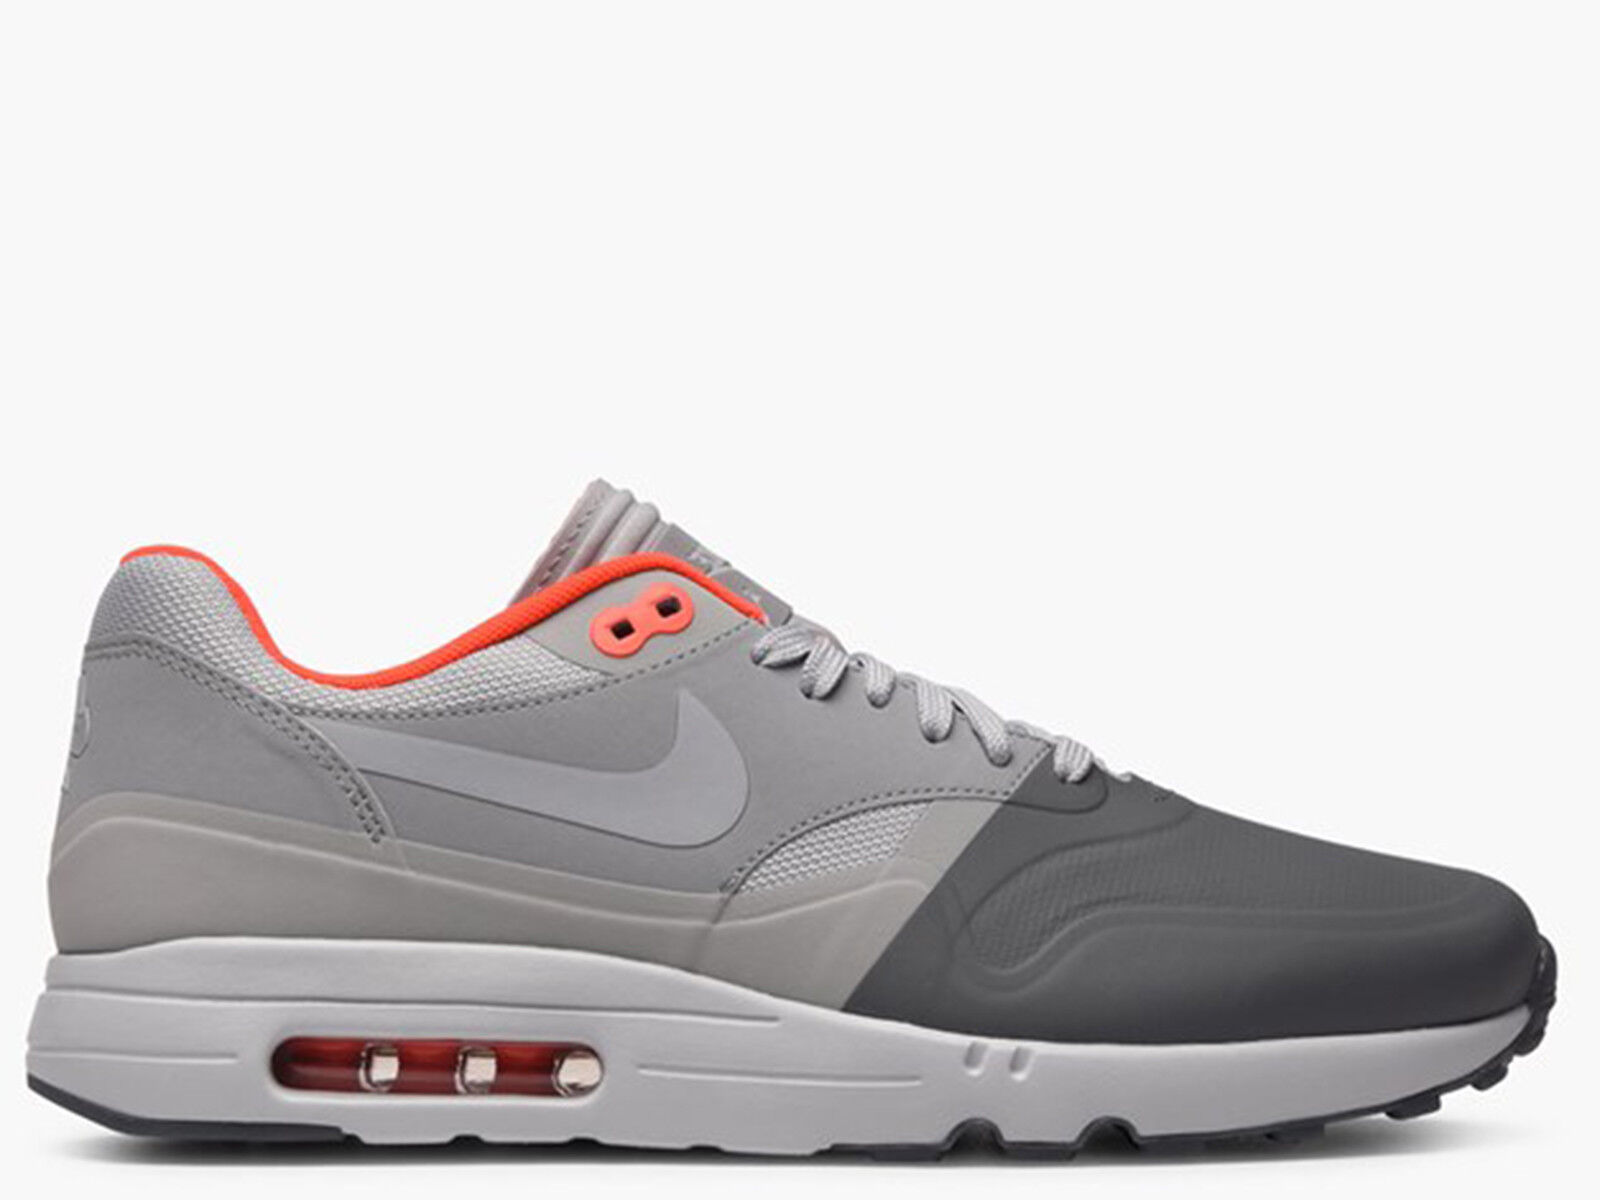 New shoes for men and women, limited time discount Brand New Nike Air Max 1 Ultra 2.0 SE Men's Athletic Sneakers Price reduction